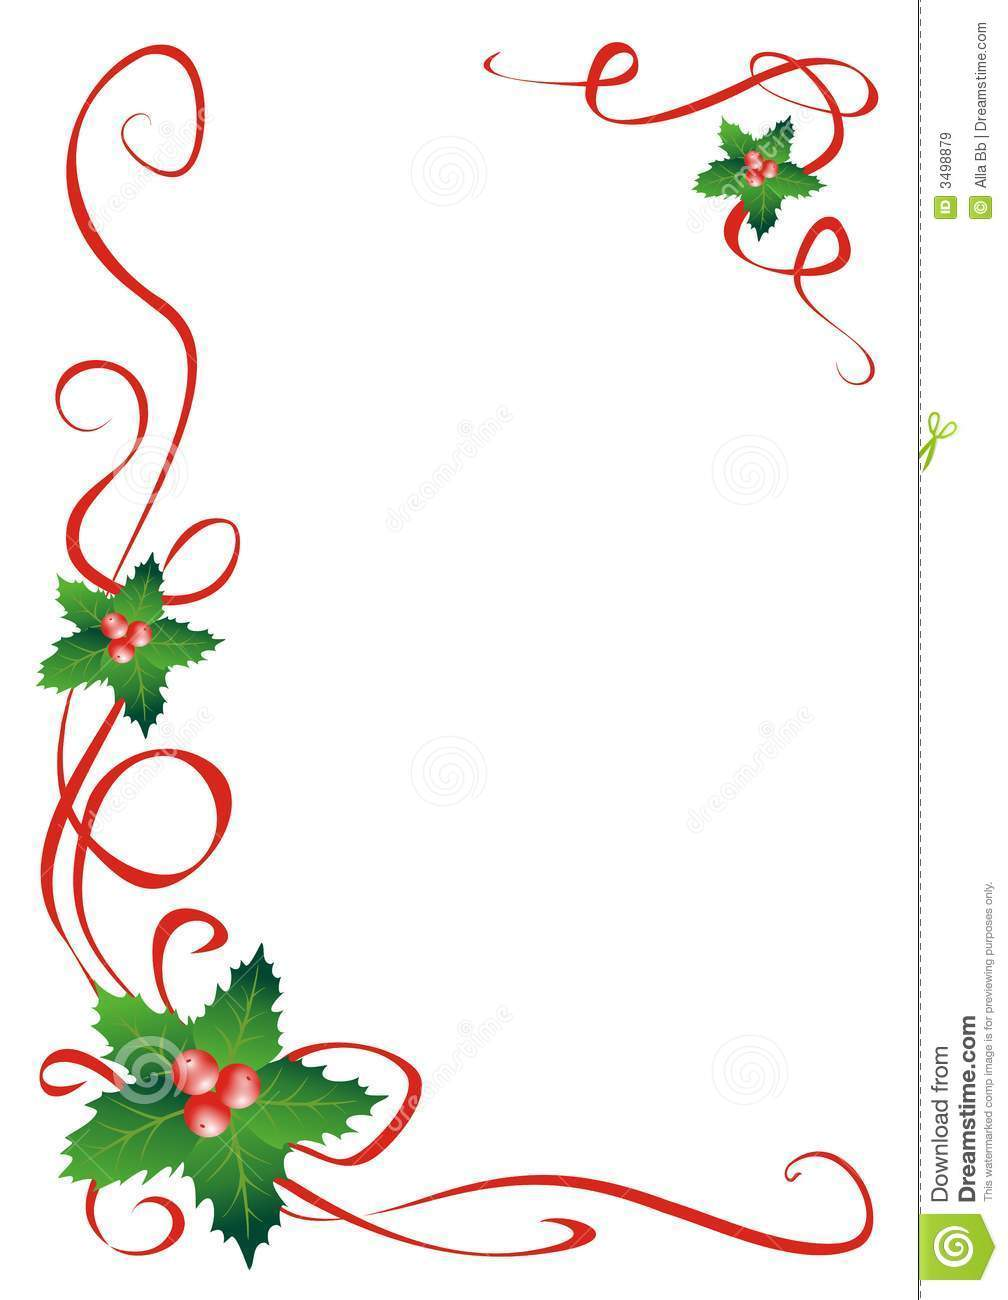 Holly line clipart 5 » Clipart Portal.